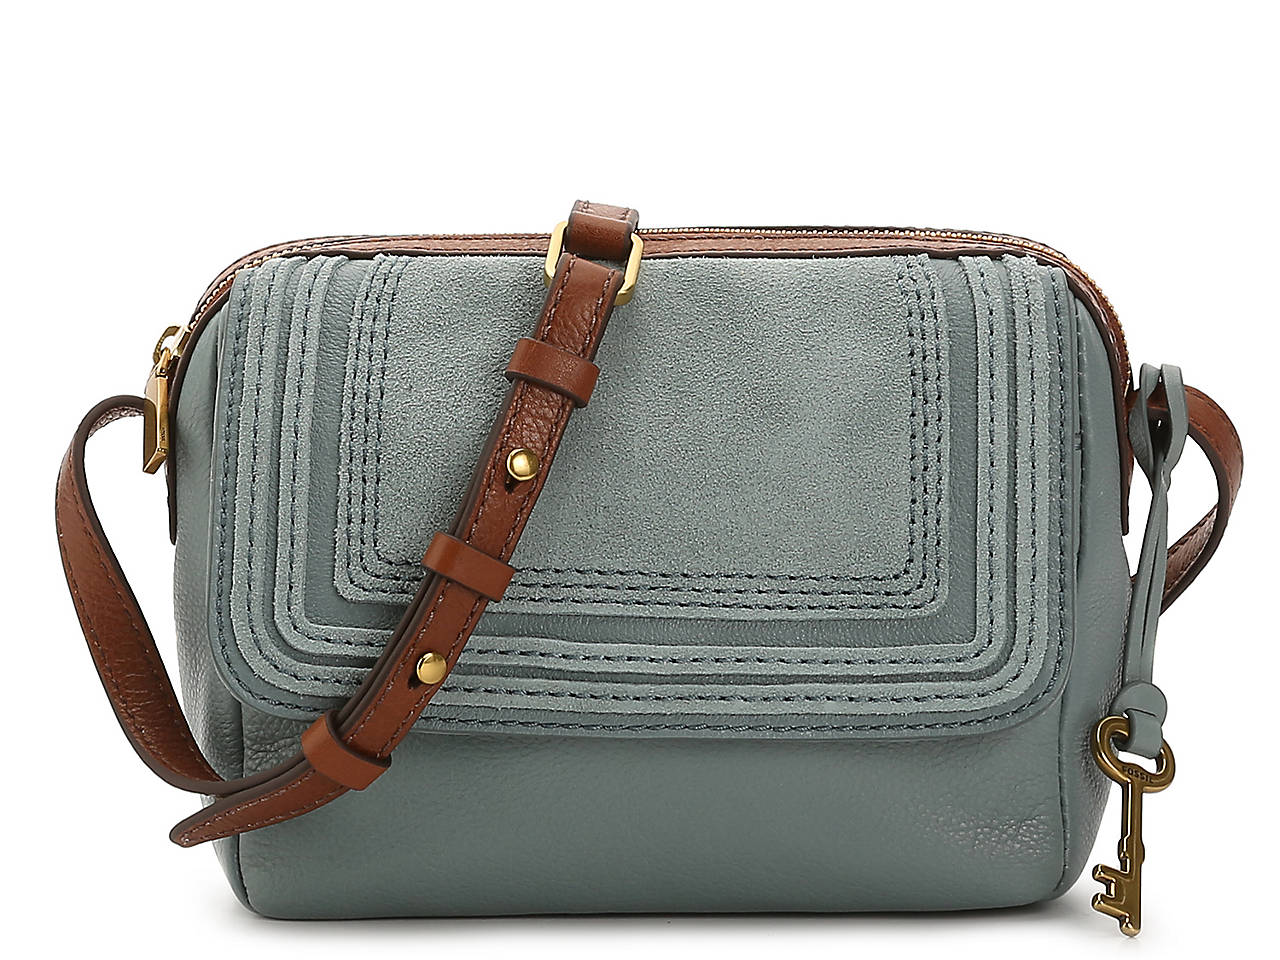 8c7c17258c03 Fossil Aria Leather Crossbody Bag Women's Handbags & Accessories | DSW